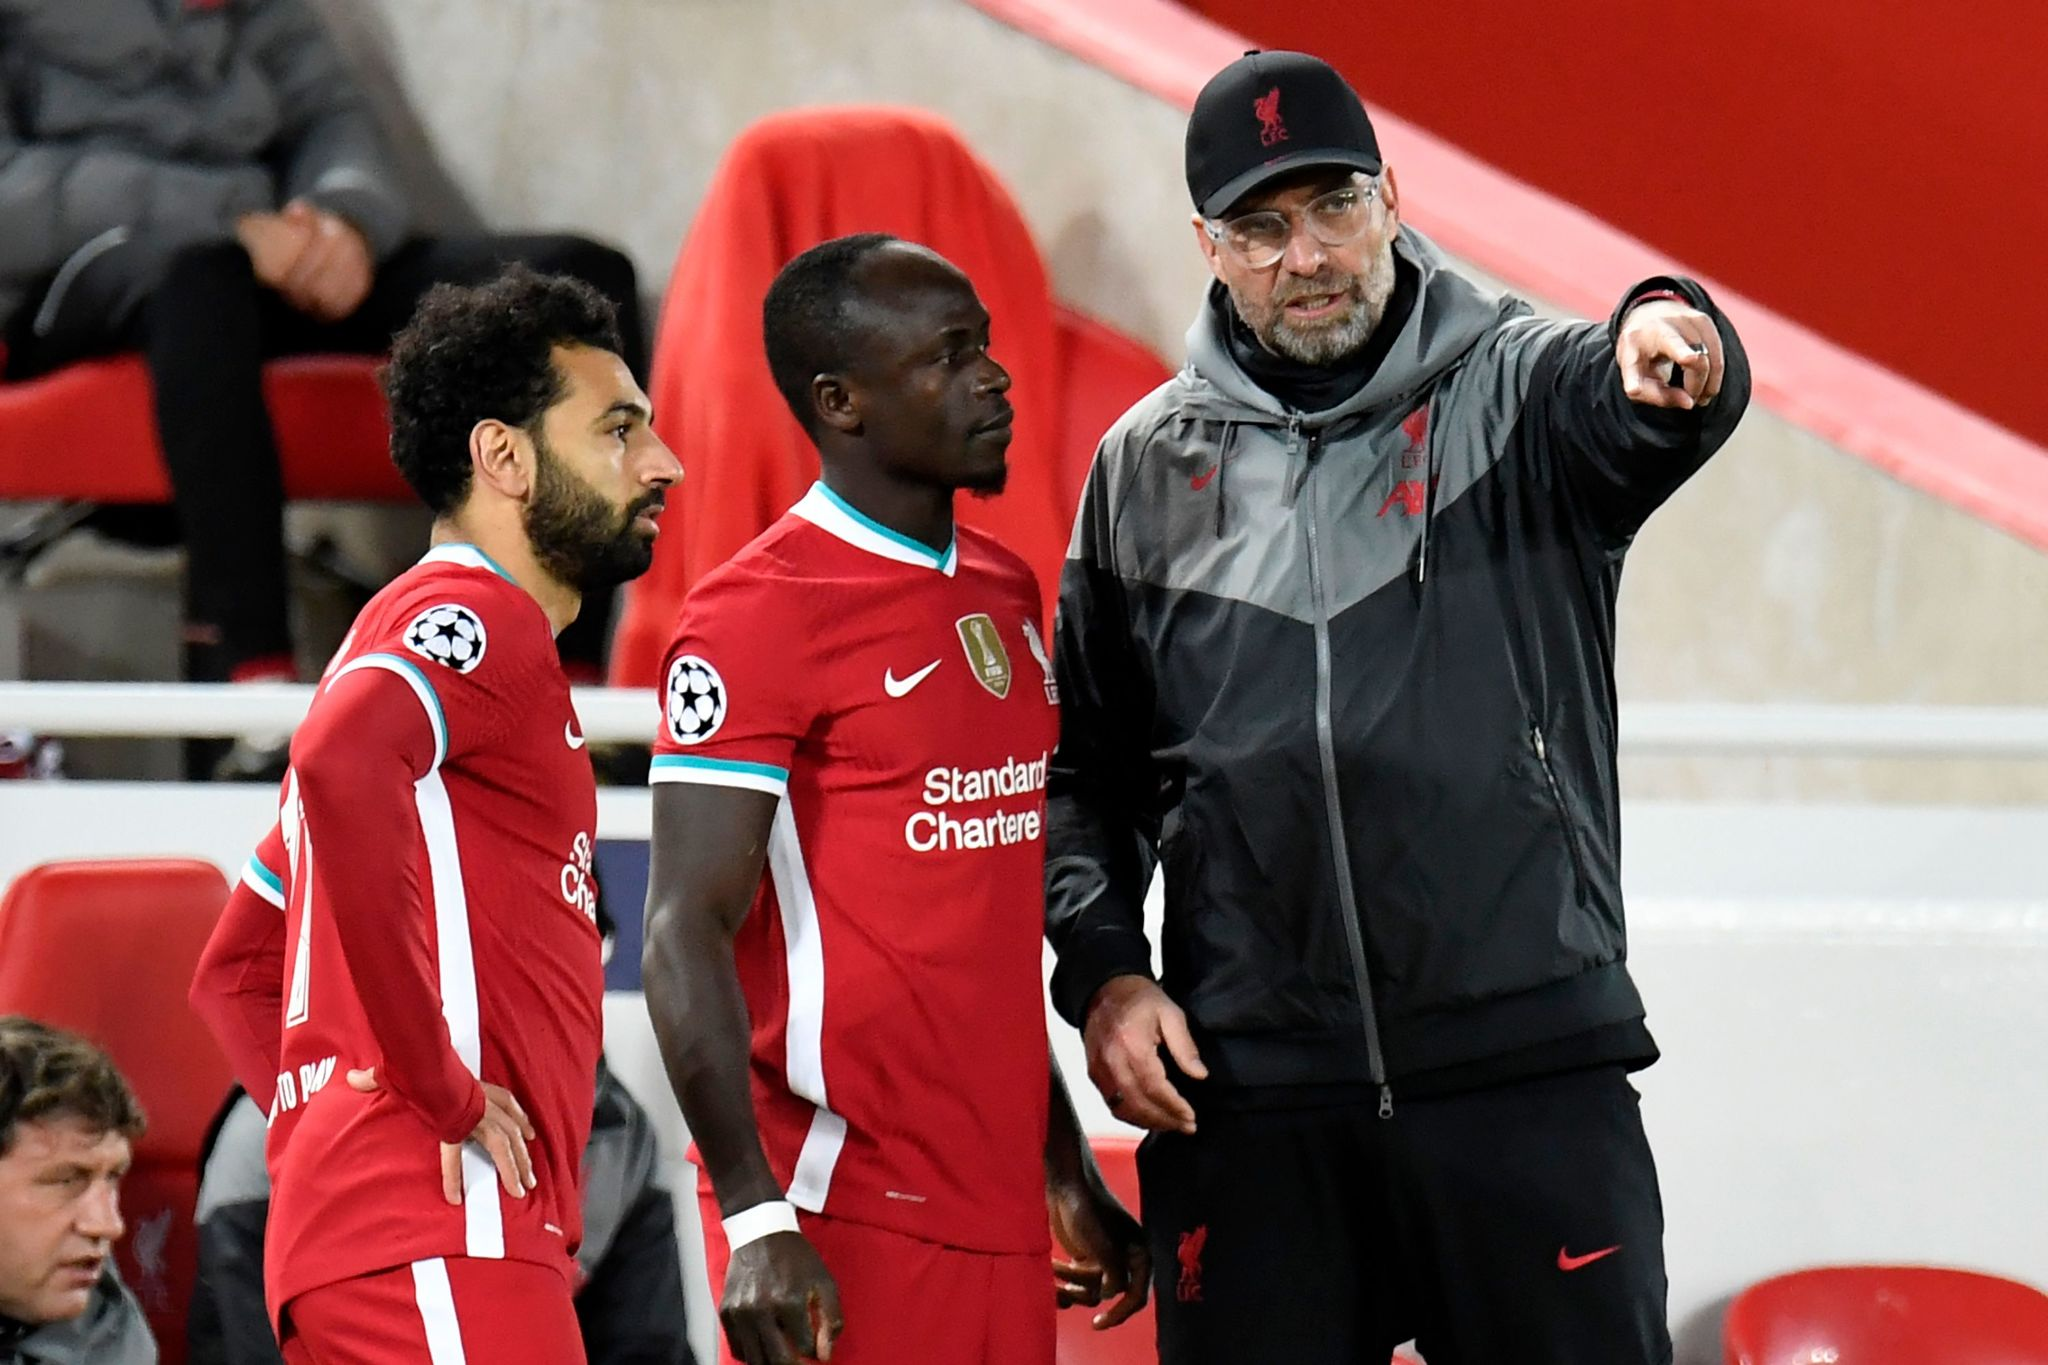 Liverpools German manager Jurgen lt;HIT gt;Klopp lt;/HIT gt; (R) speaks with Liverpools Senegalese striker Sadio Mane (C) and Liverpools Egyptian midfielder Mohamed Salah (L) as they prepare to come on as substitutes during the UEFA Champions league Group D football match between Liverpool and Midtjylland at Anfield in Liverpool, north west England on October 27, 2020. (Photo by PETER POWELL / POOL / AFP)